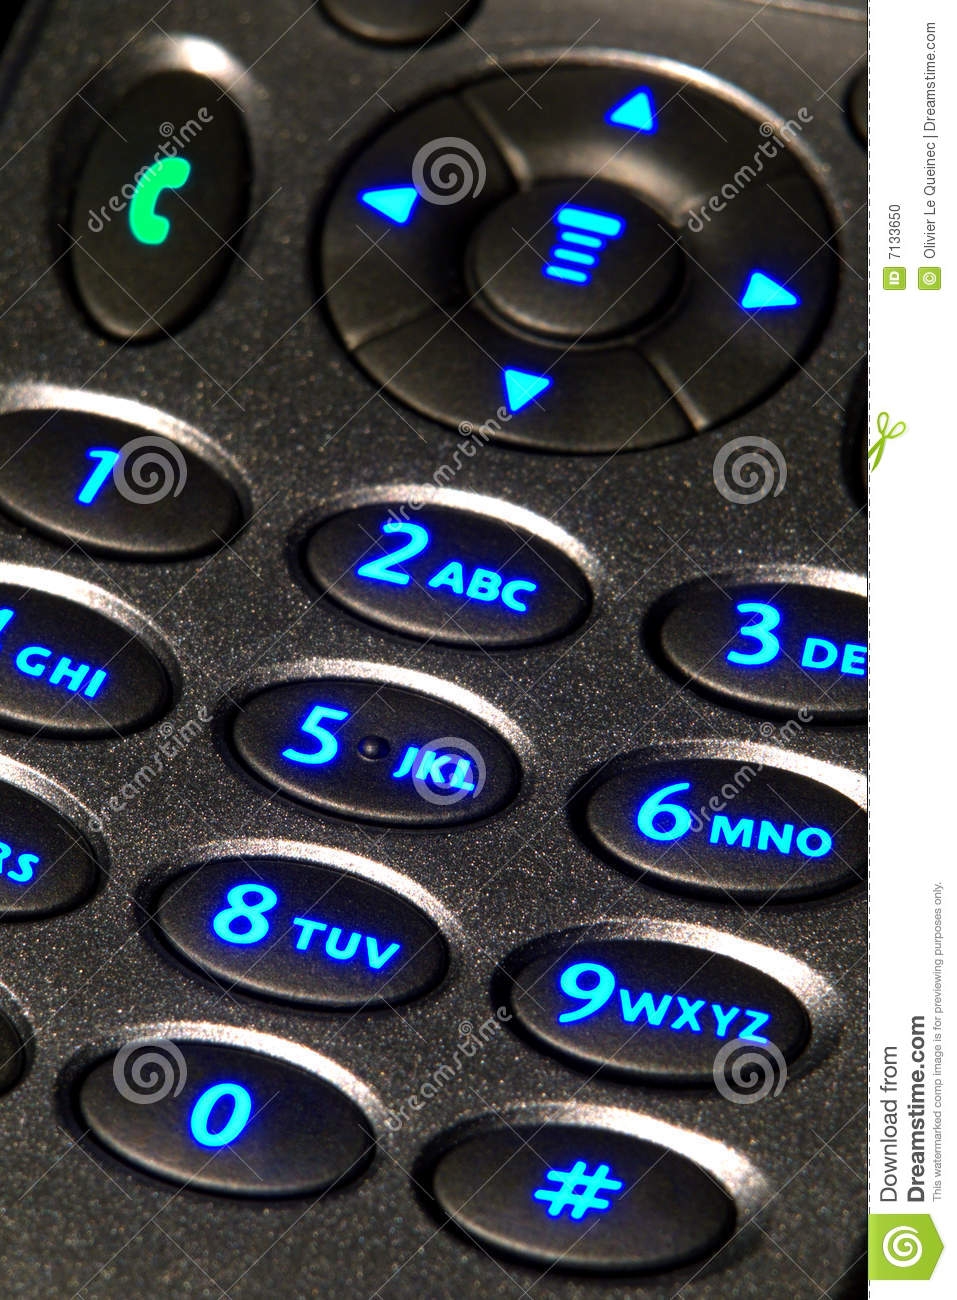 Cell phone numbers united states